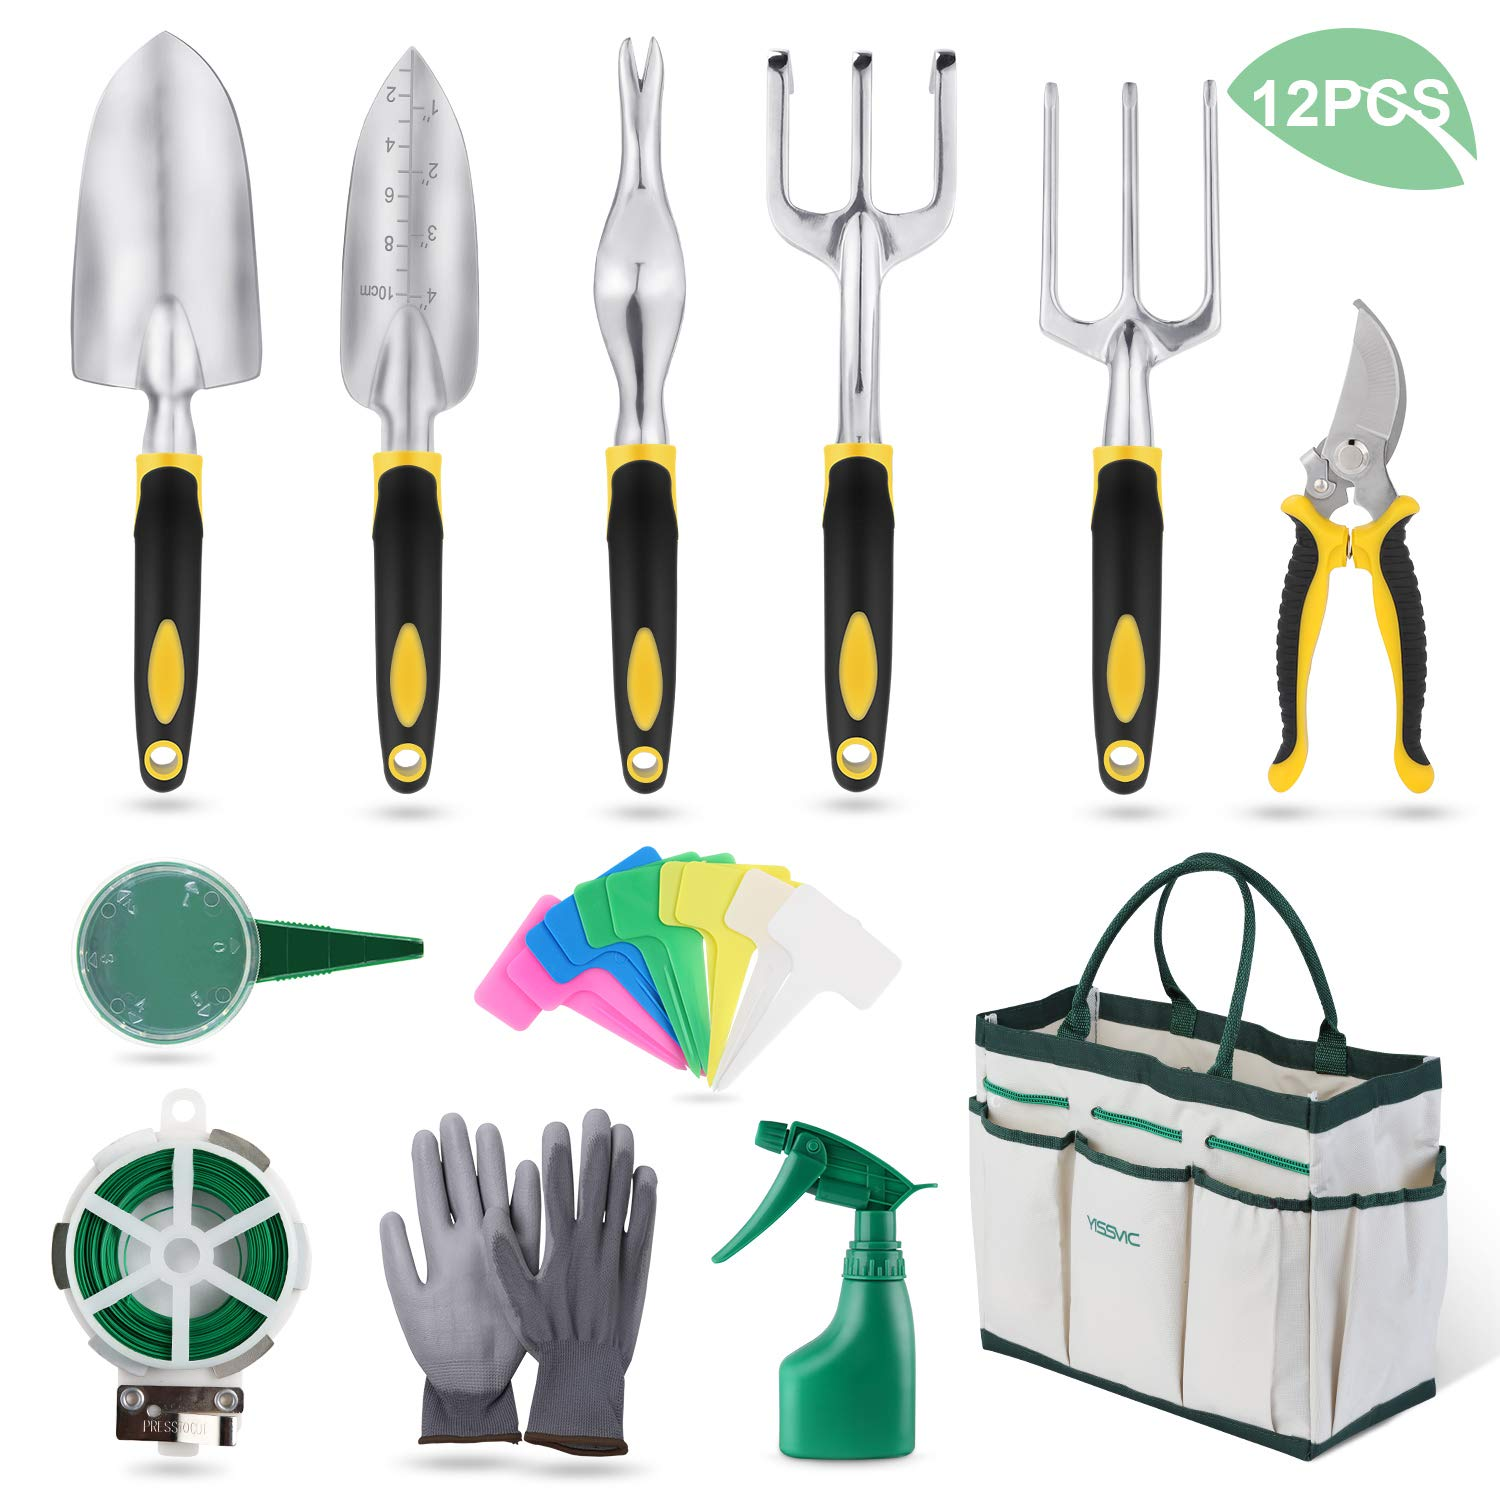 YISSVIC Garden Tools Set 12 Piece Heavy Duty Gardenin Kit Cast Aluminum with Soft Rubberized Non-Slip Handle, Durable Storage Tote Bag and Pruning Shears, Gardening Supplies Gifts for Men Women by YISSVIC